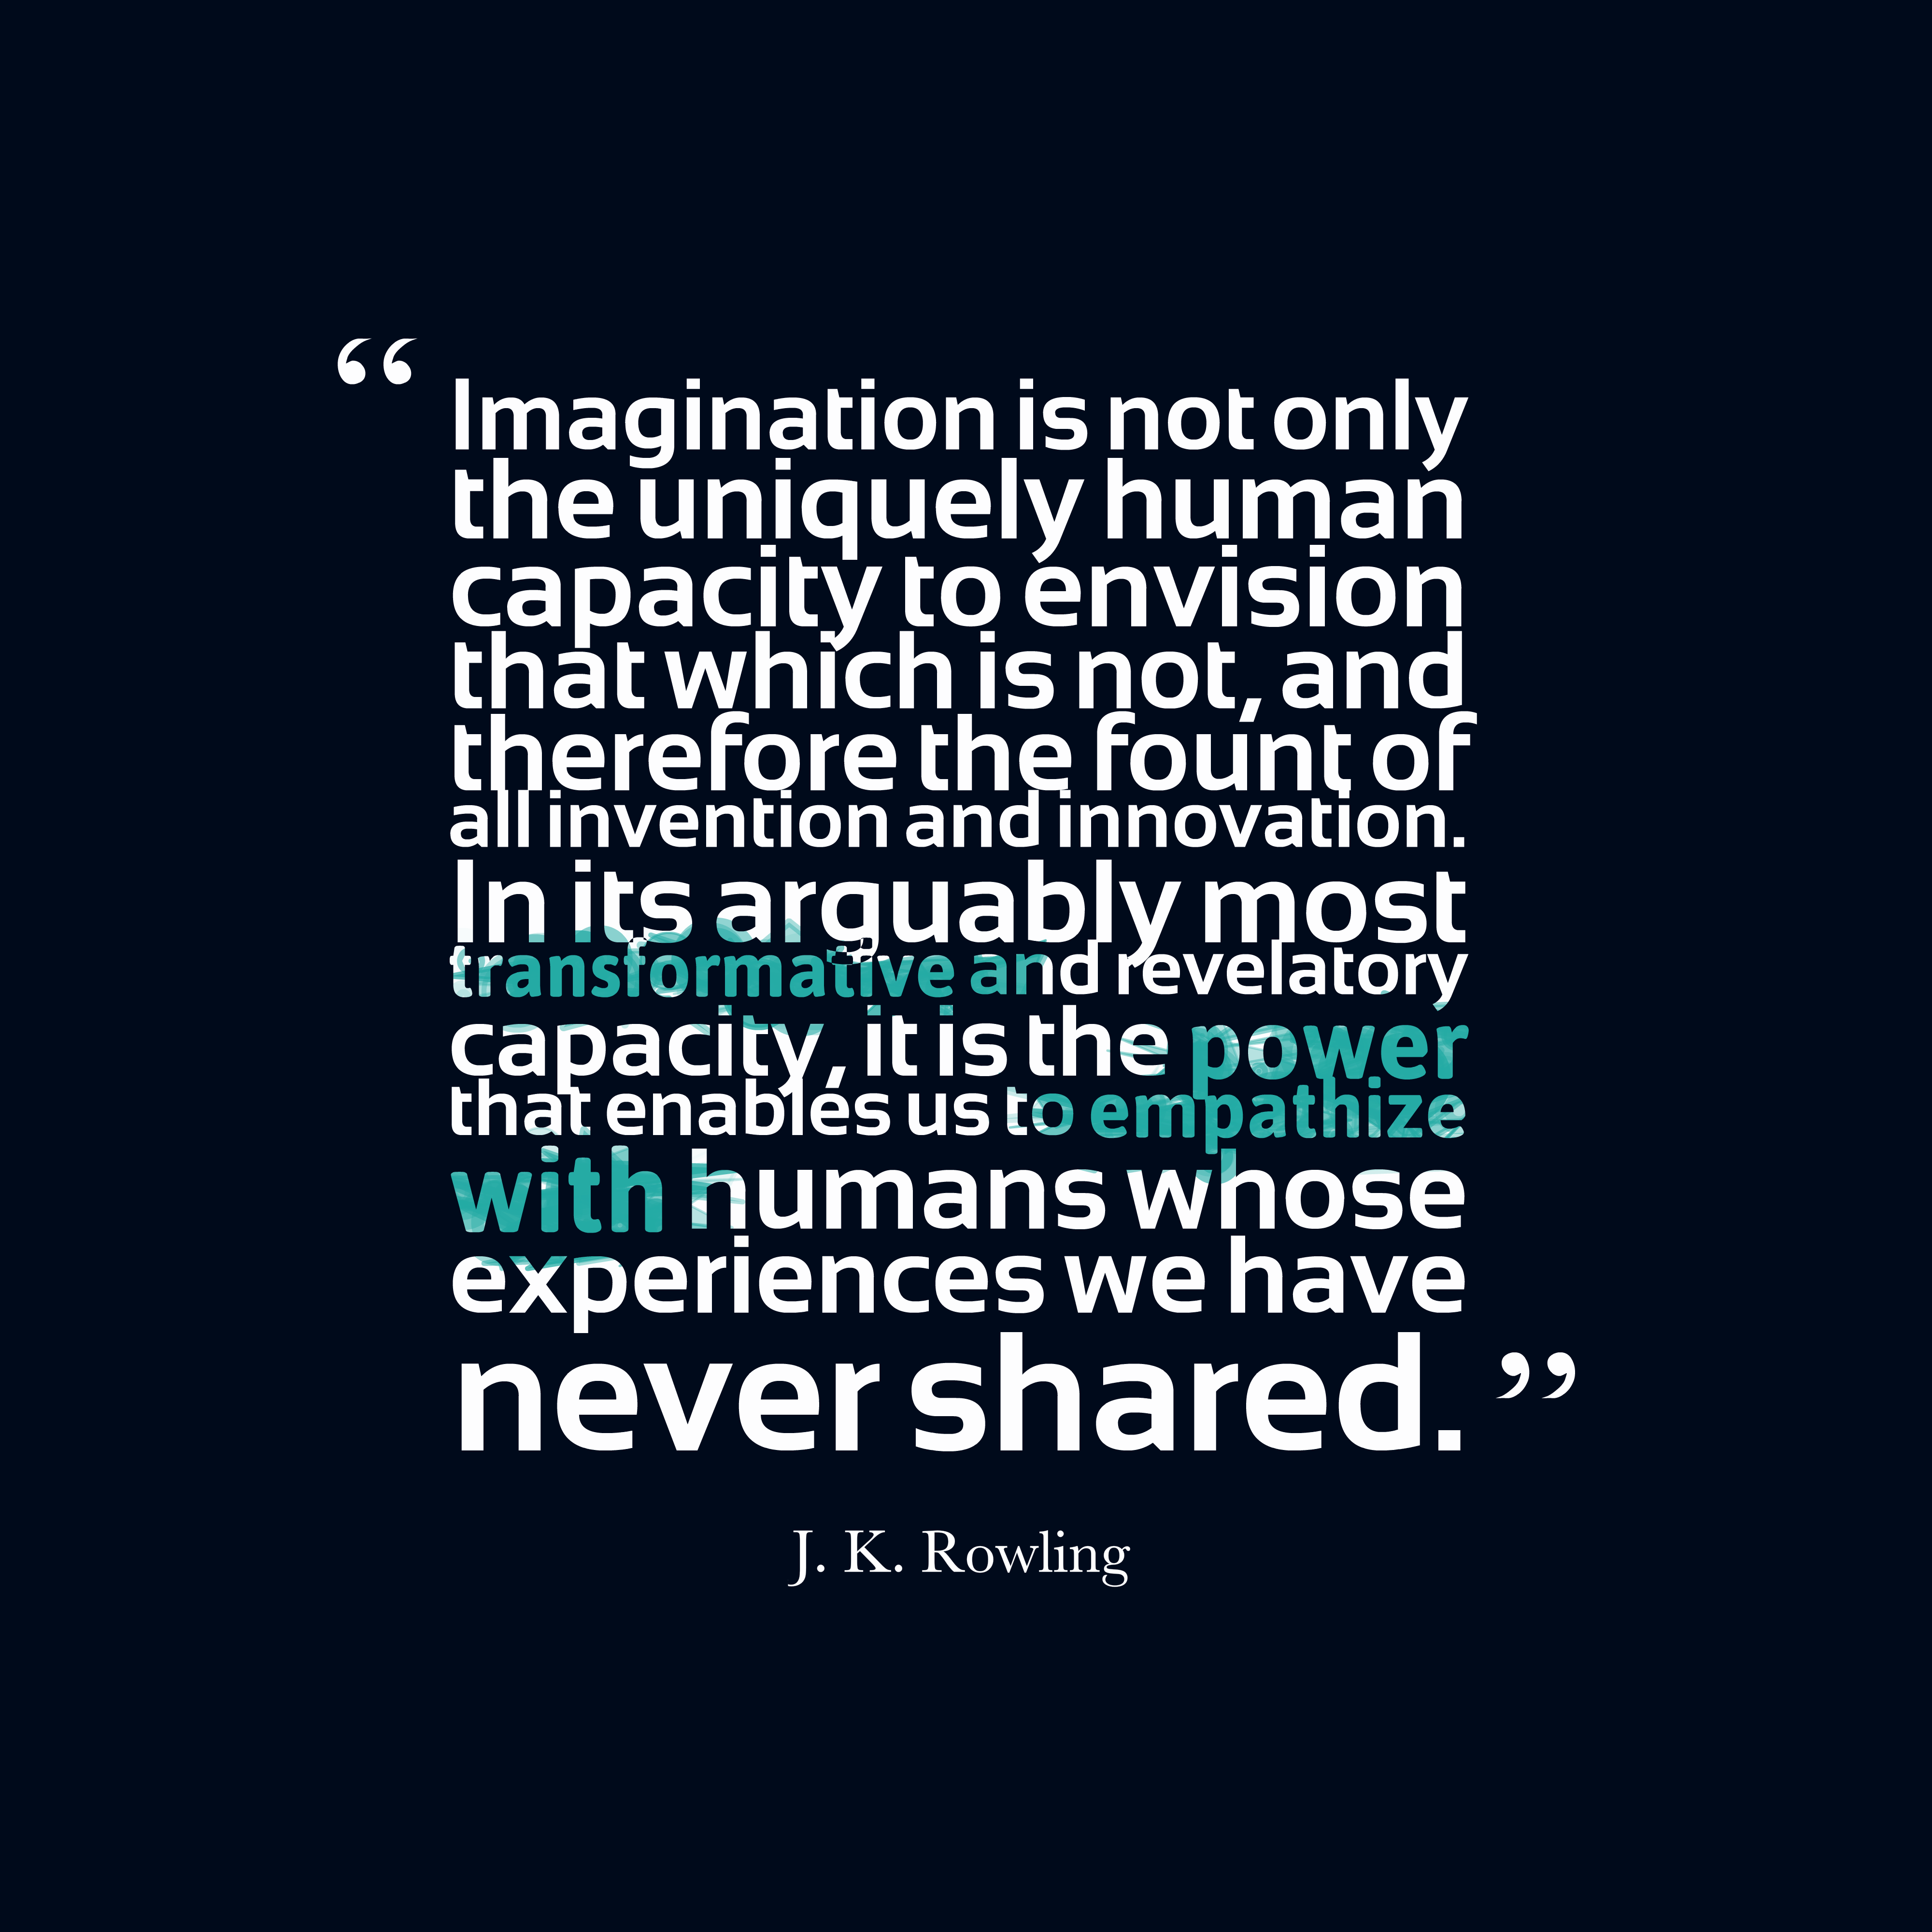 Quotes image of Imagination is not only the uniquely human capacity to envision that which is not, and therefore the fount of all invention and innovation. In its arguably most transformative and revelatory capacity, it is the power that enables us to empathize with humans whose experiences we have never shared.